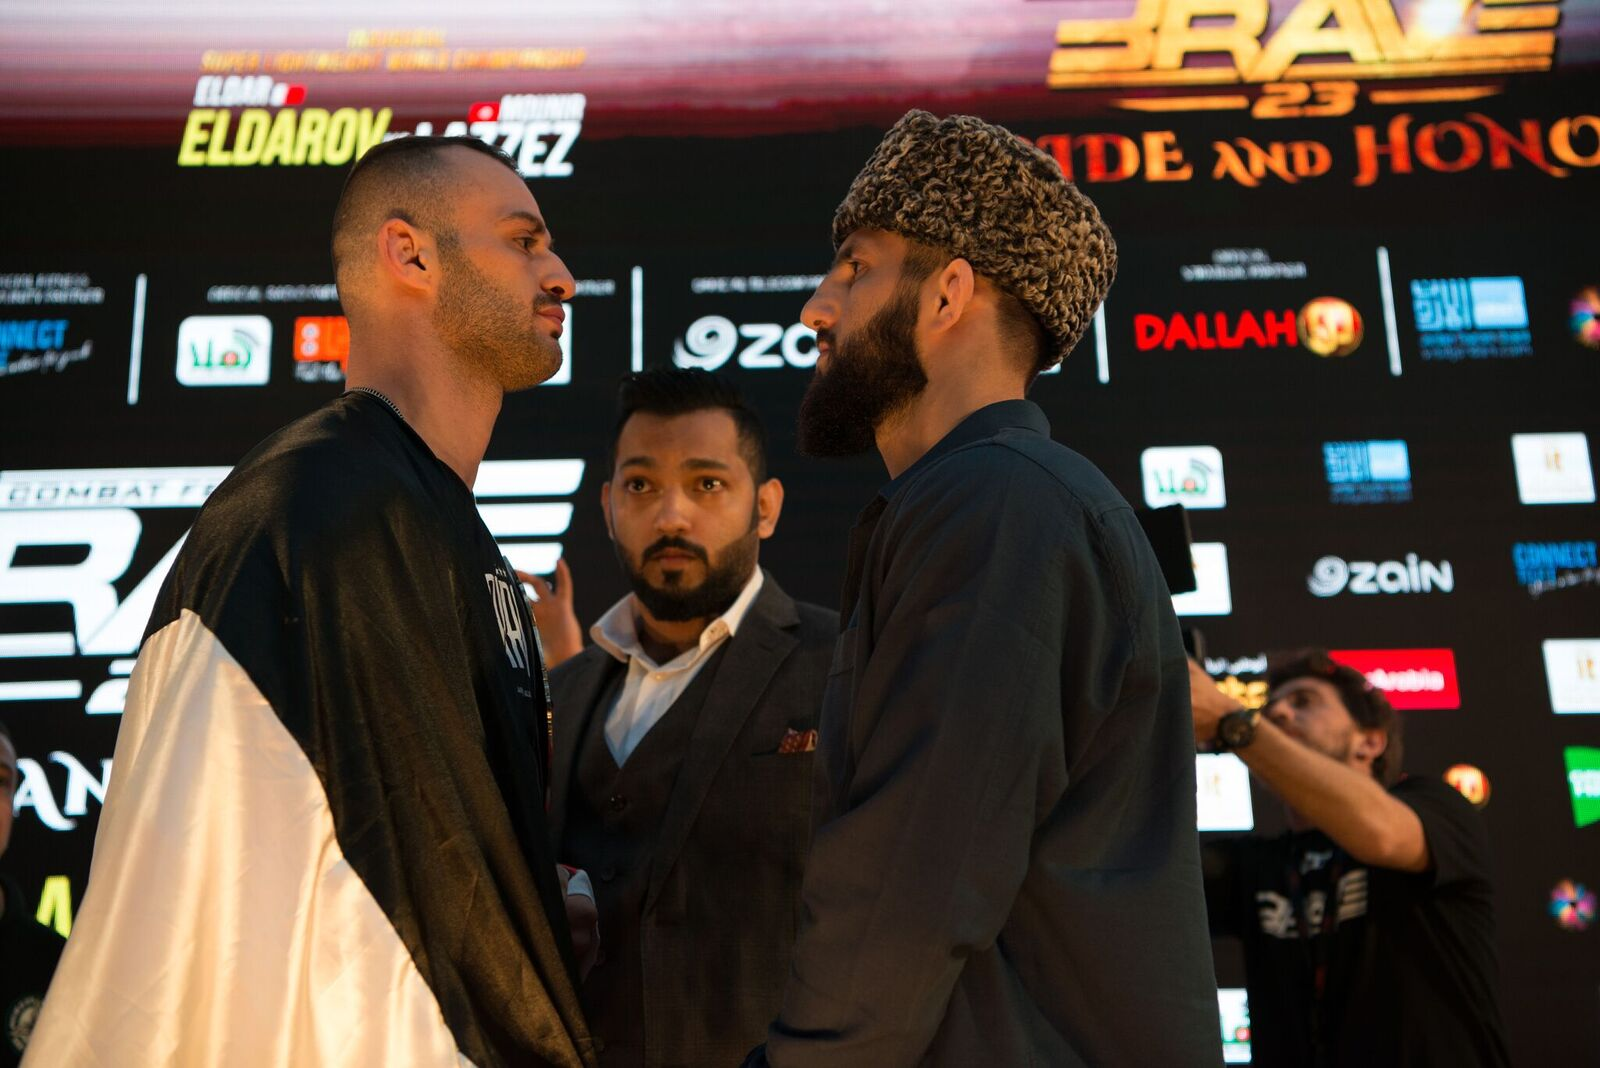 World champ Abdoul doesn't feel extra pressure for title defense at BRAVE CF 27 - BraveFC